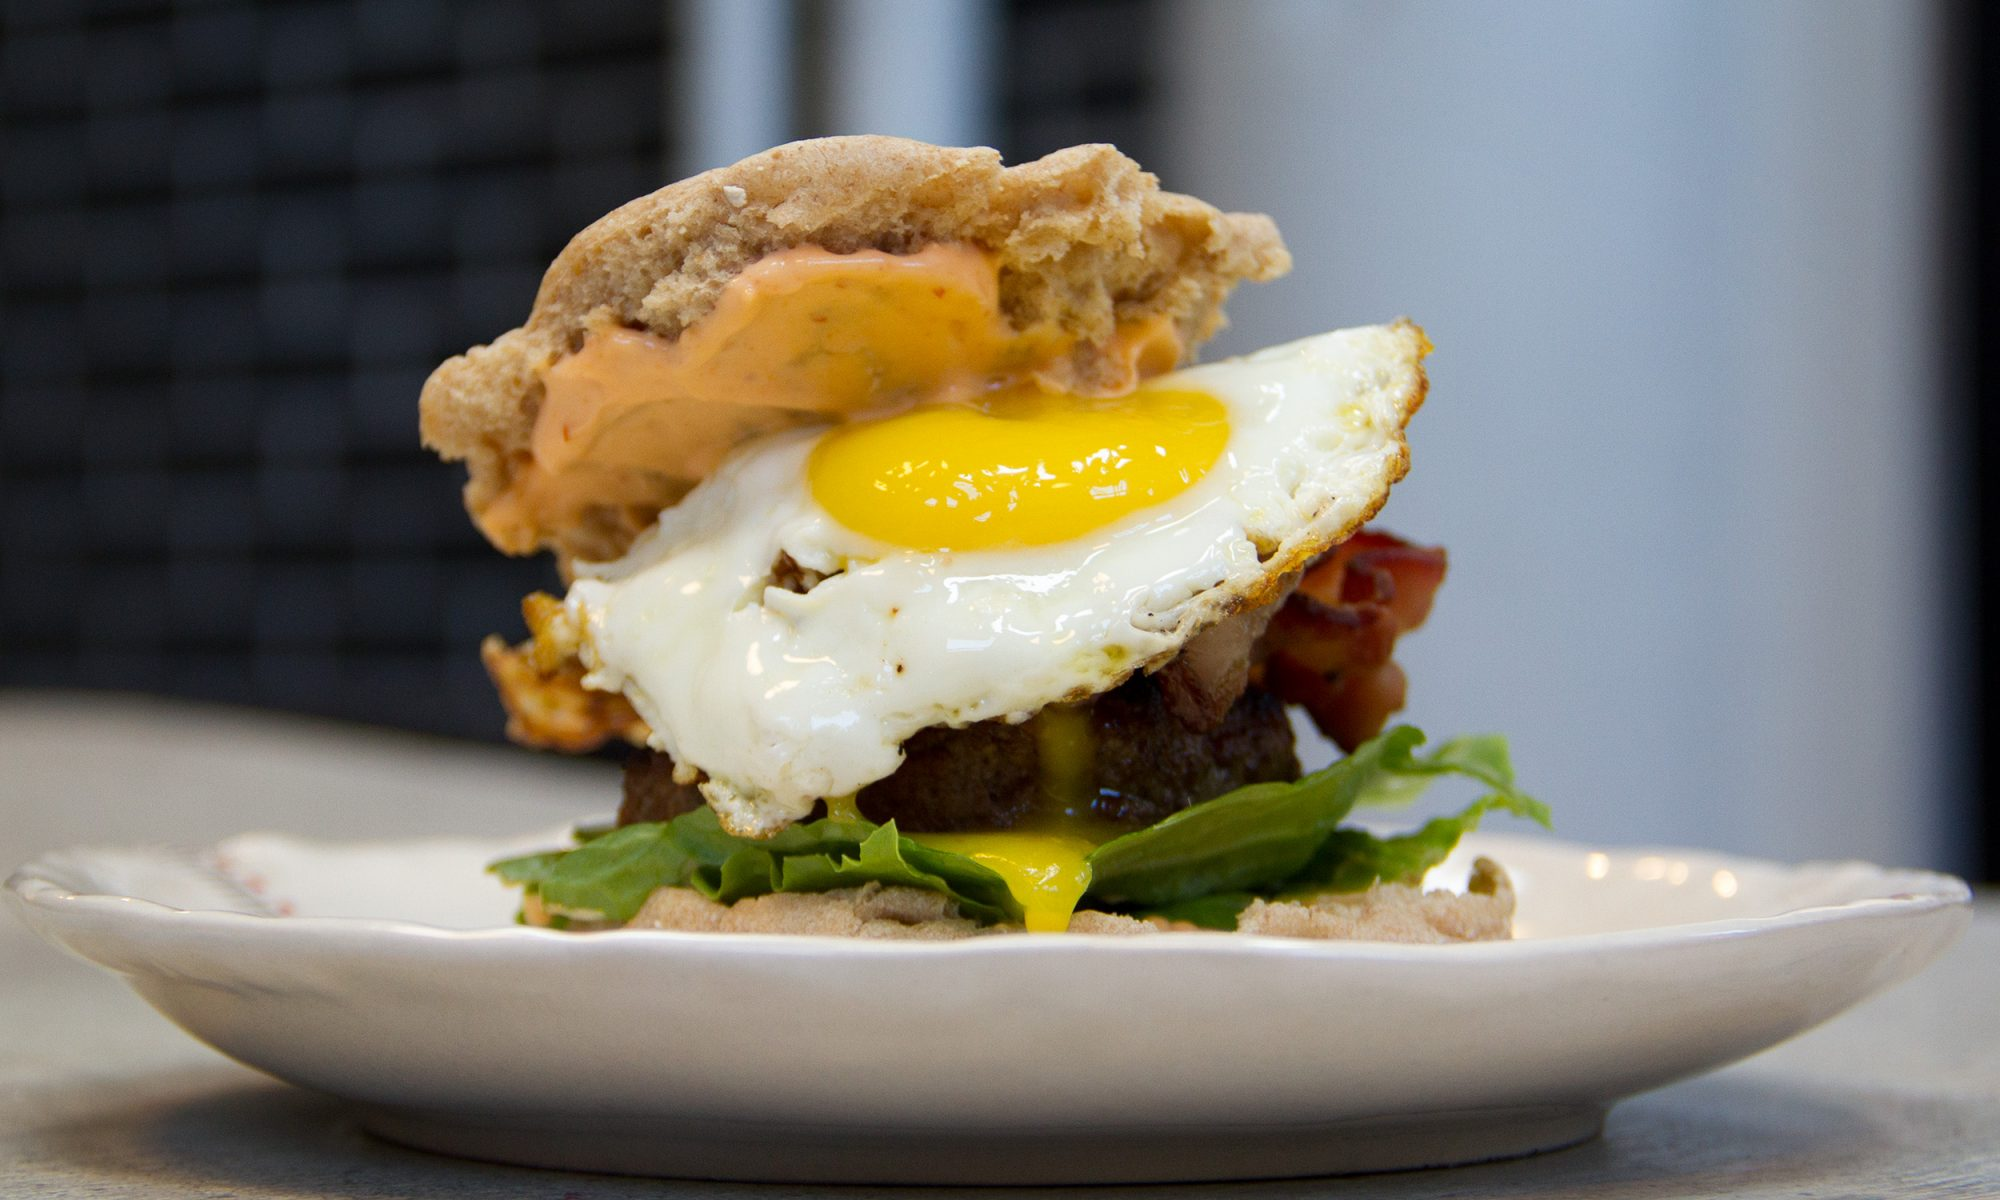 EC: This Breakfast Burger Has #YolkPorn for Days